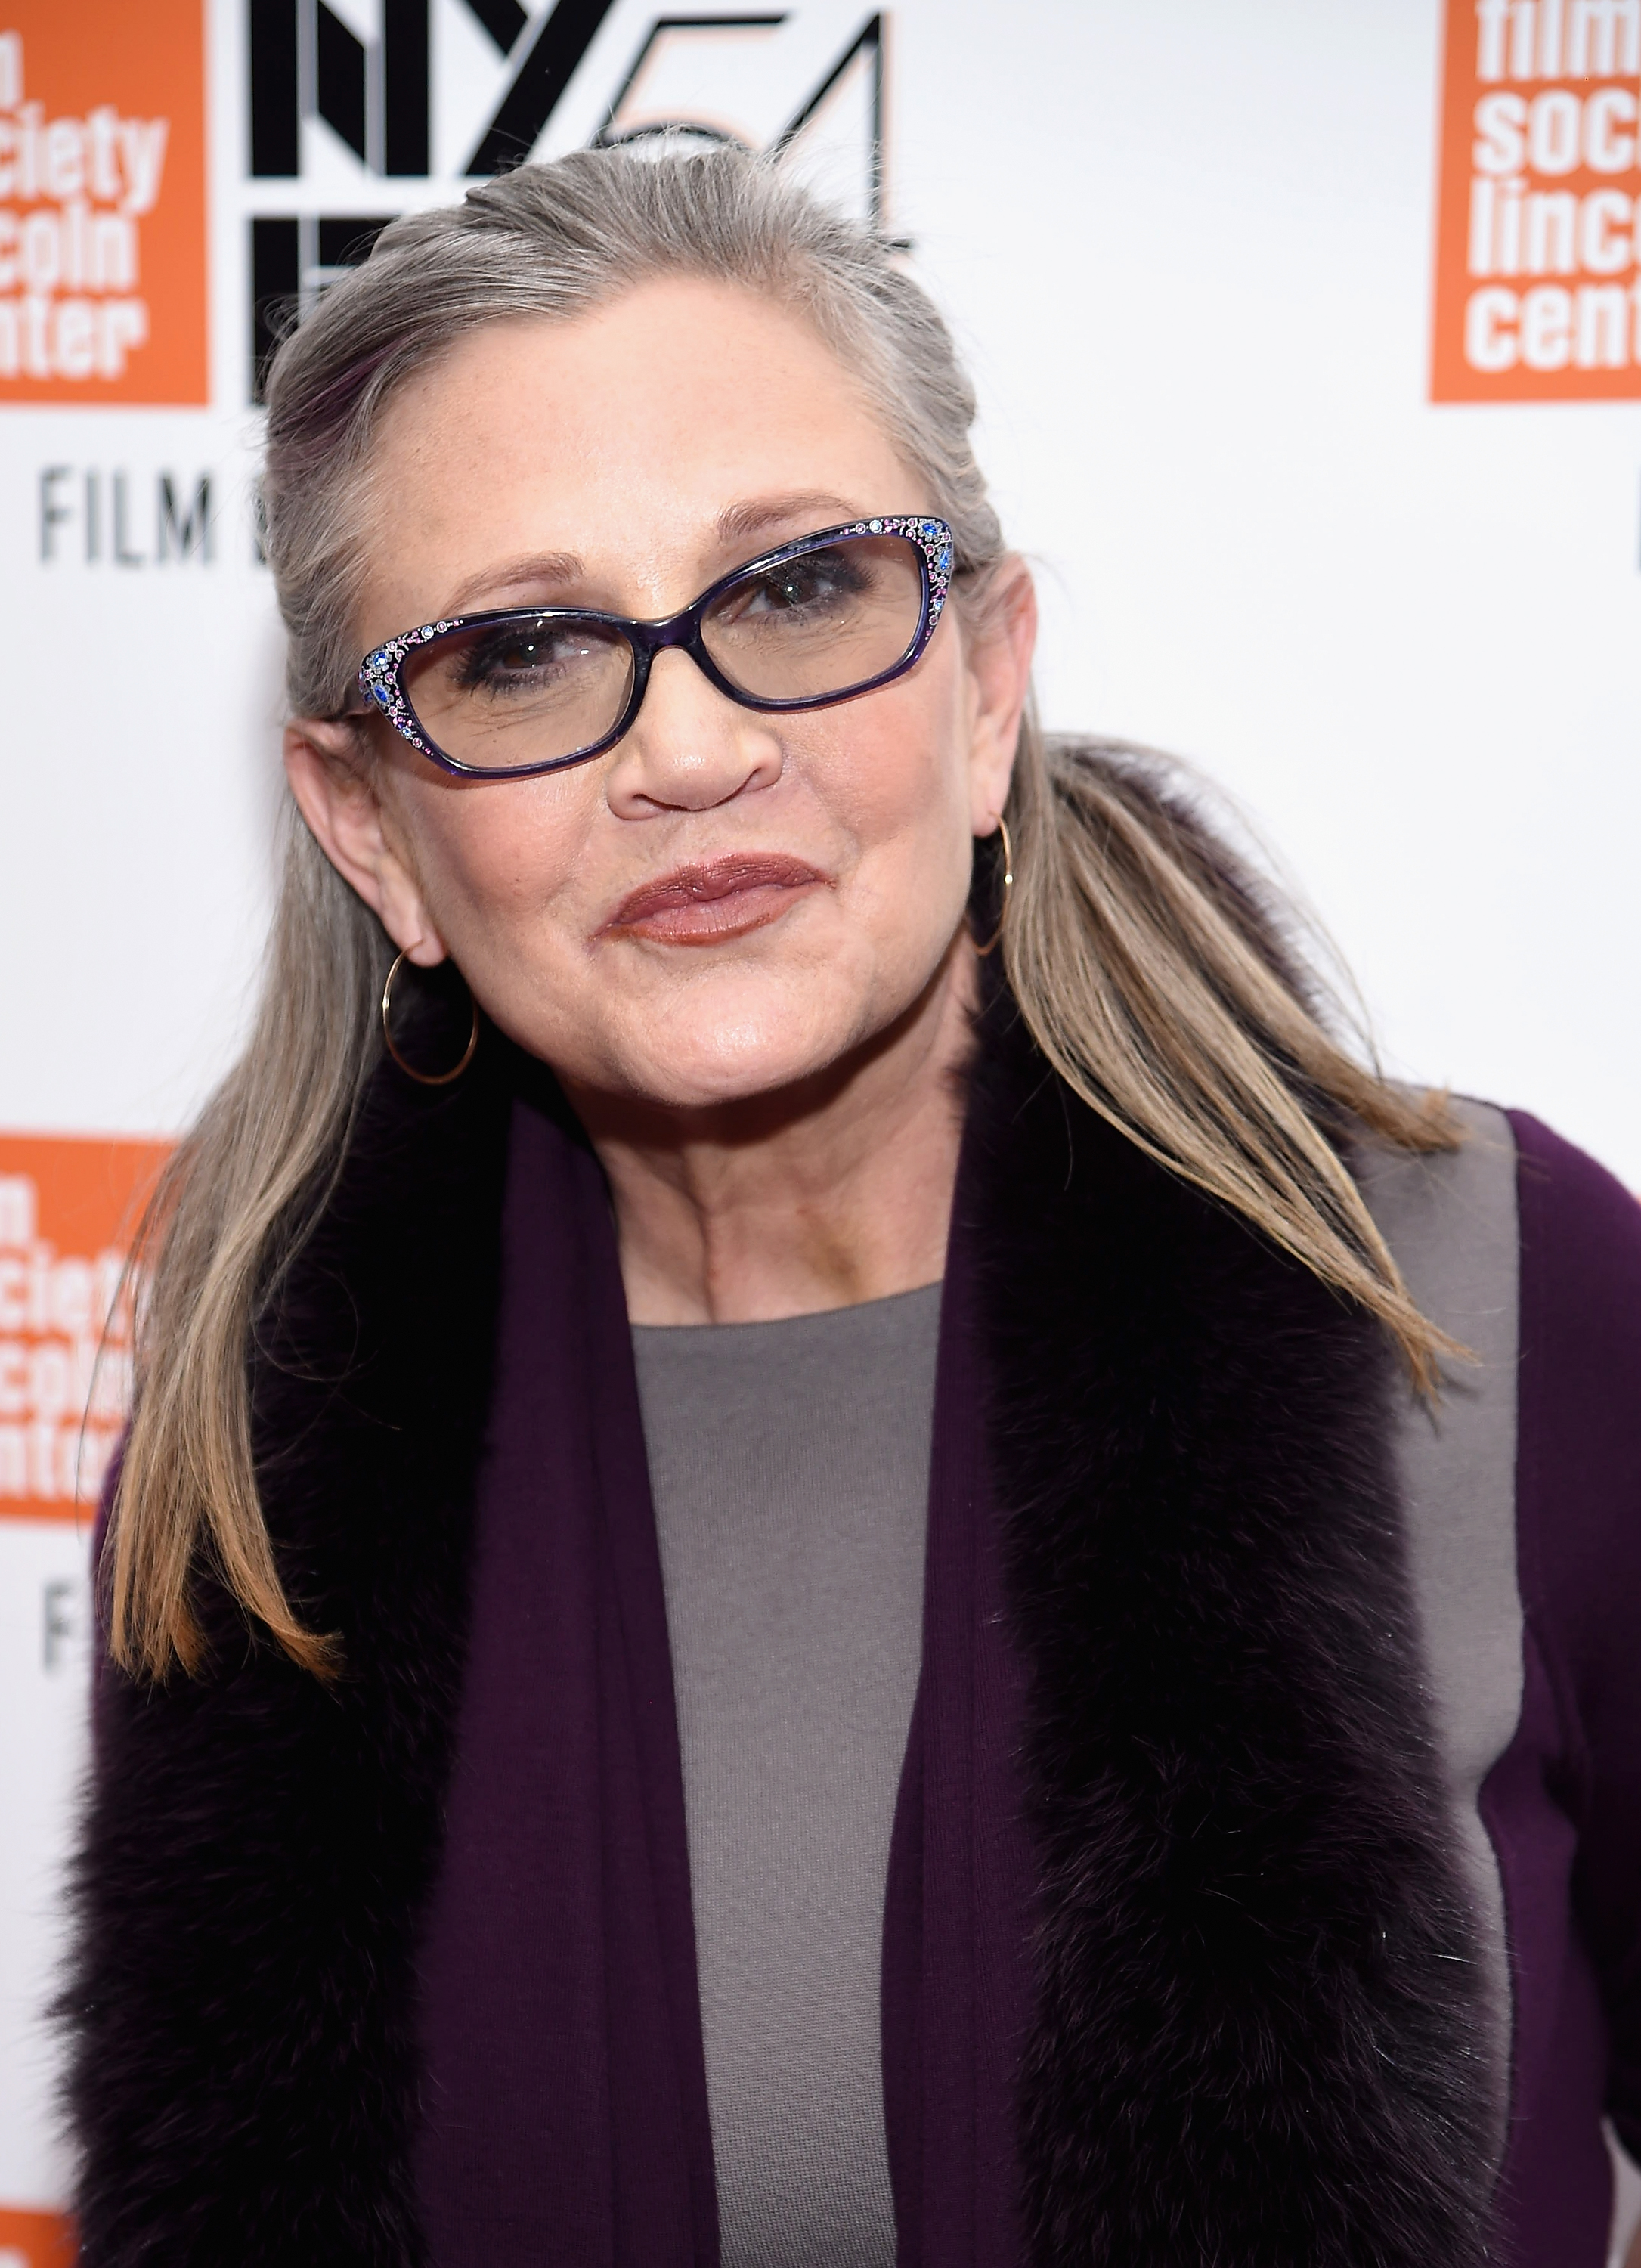 Carrie Fisher attends the 54th New York Film Festival - 'Bright Lights' Photo Cal on October 10, 2016 in New York City. (Photo by Dimitrios Kambouris/Getty Images)